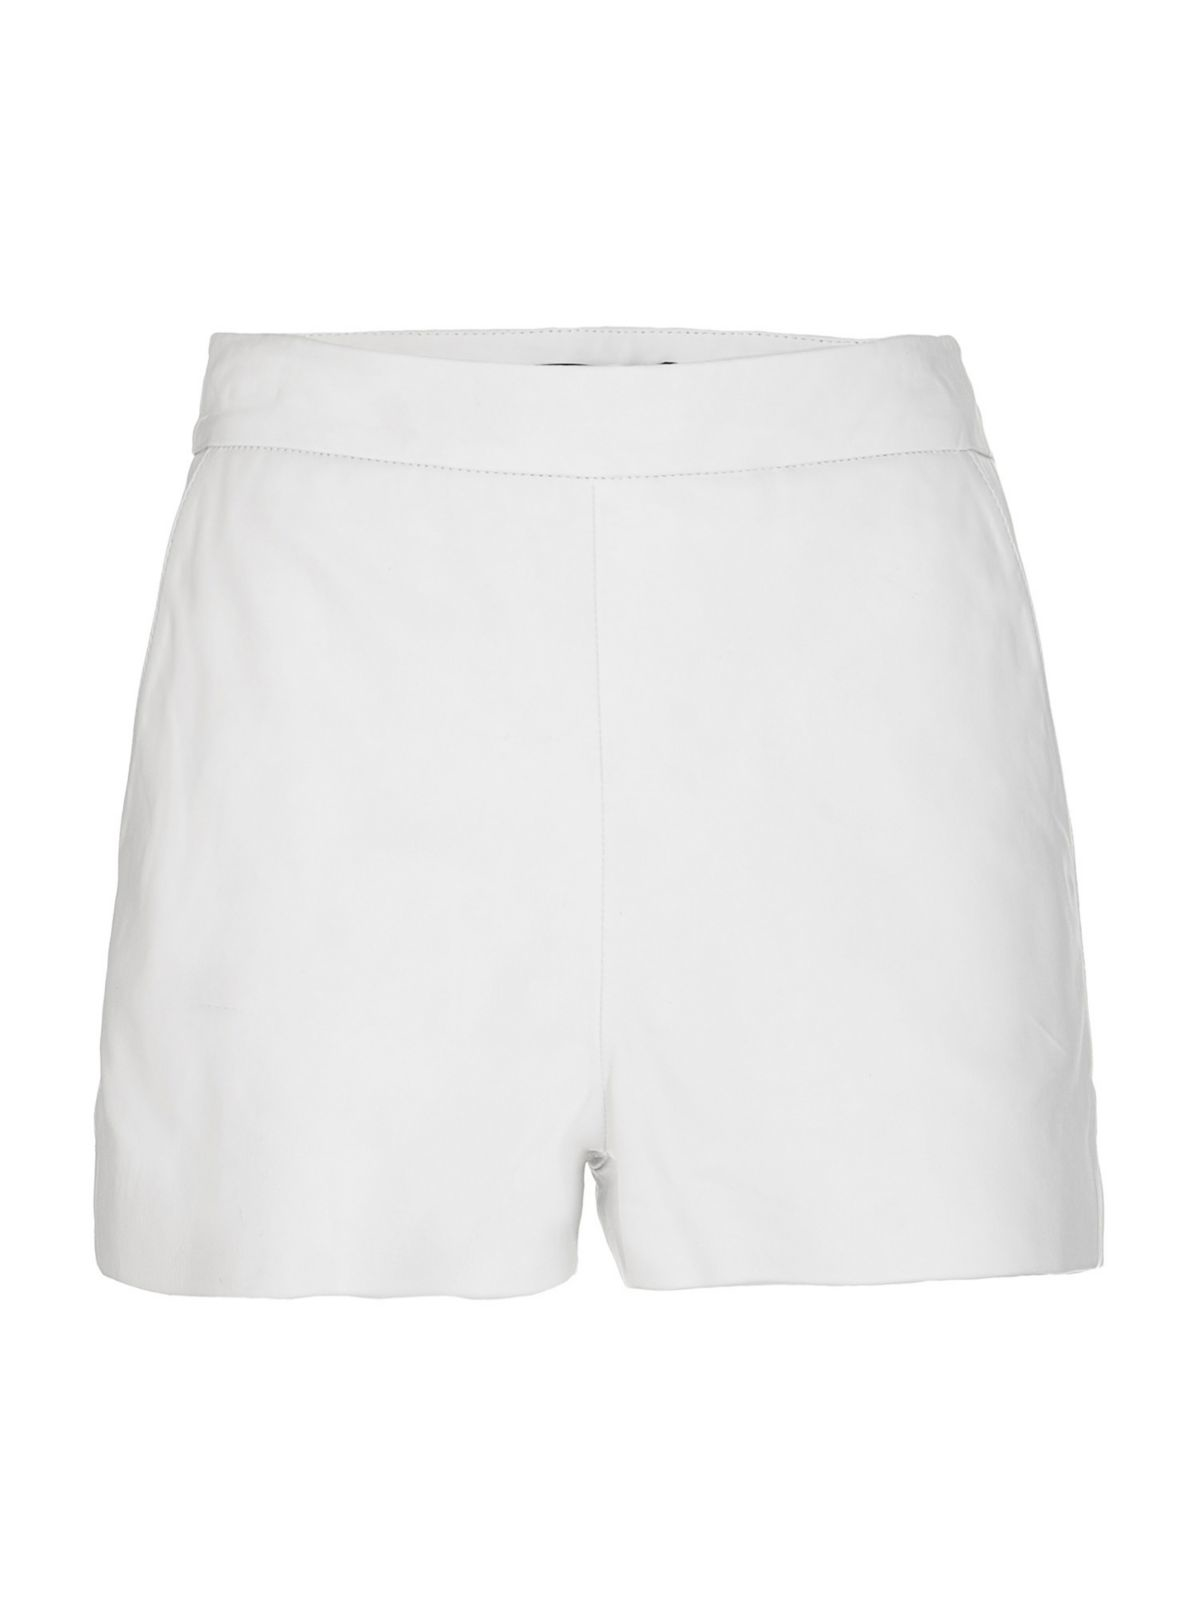 Guess Marciano Leather Shorts in White | Lyst